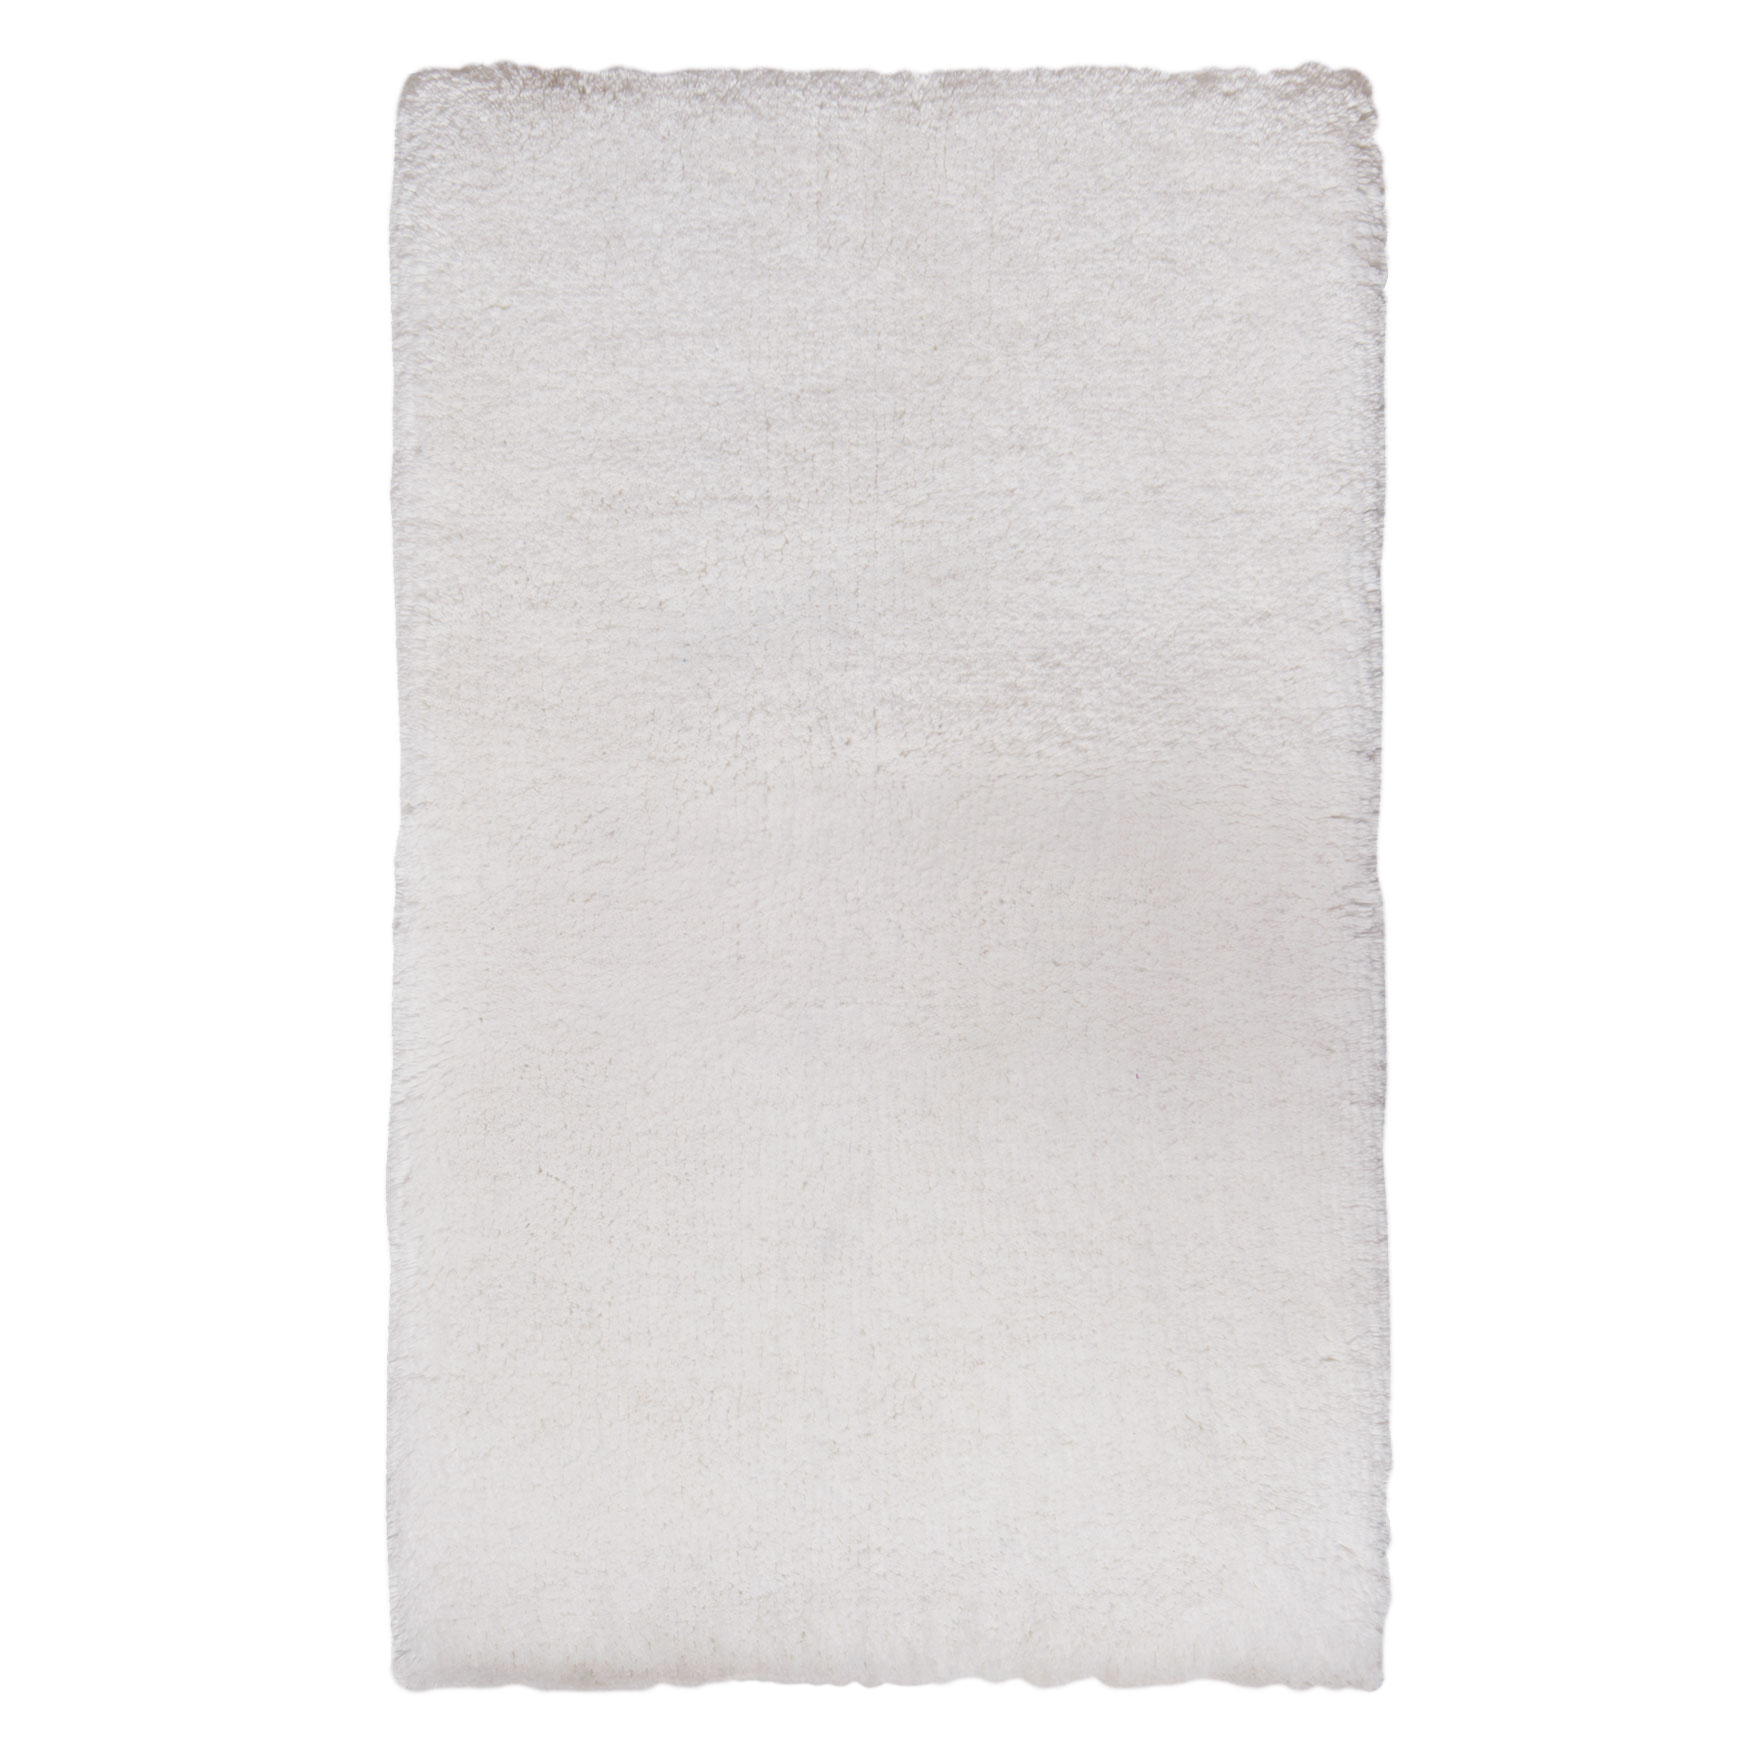 Memory Foam Cotton Tufted Bath Mat, WHITE